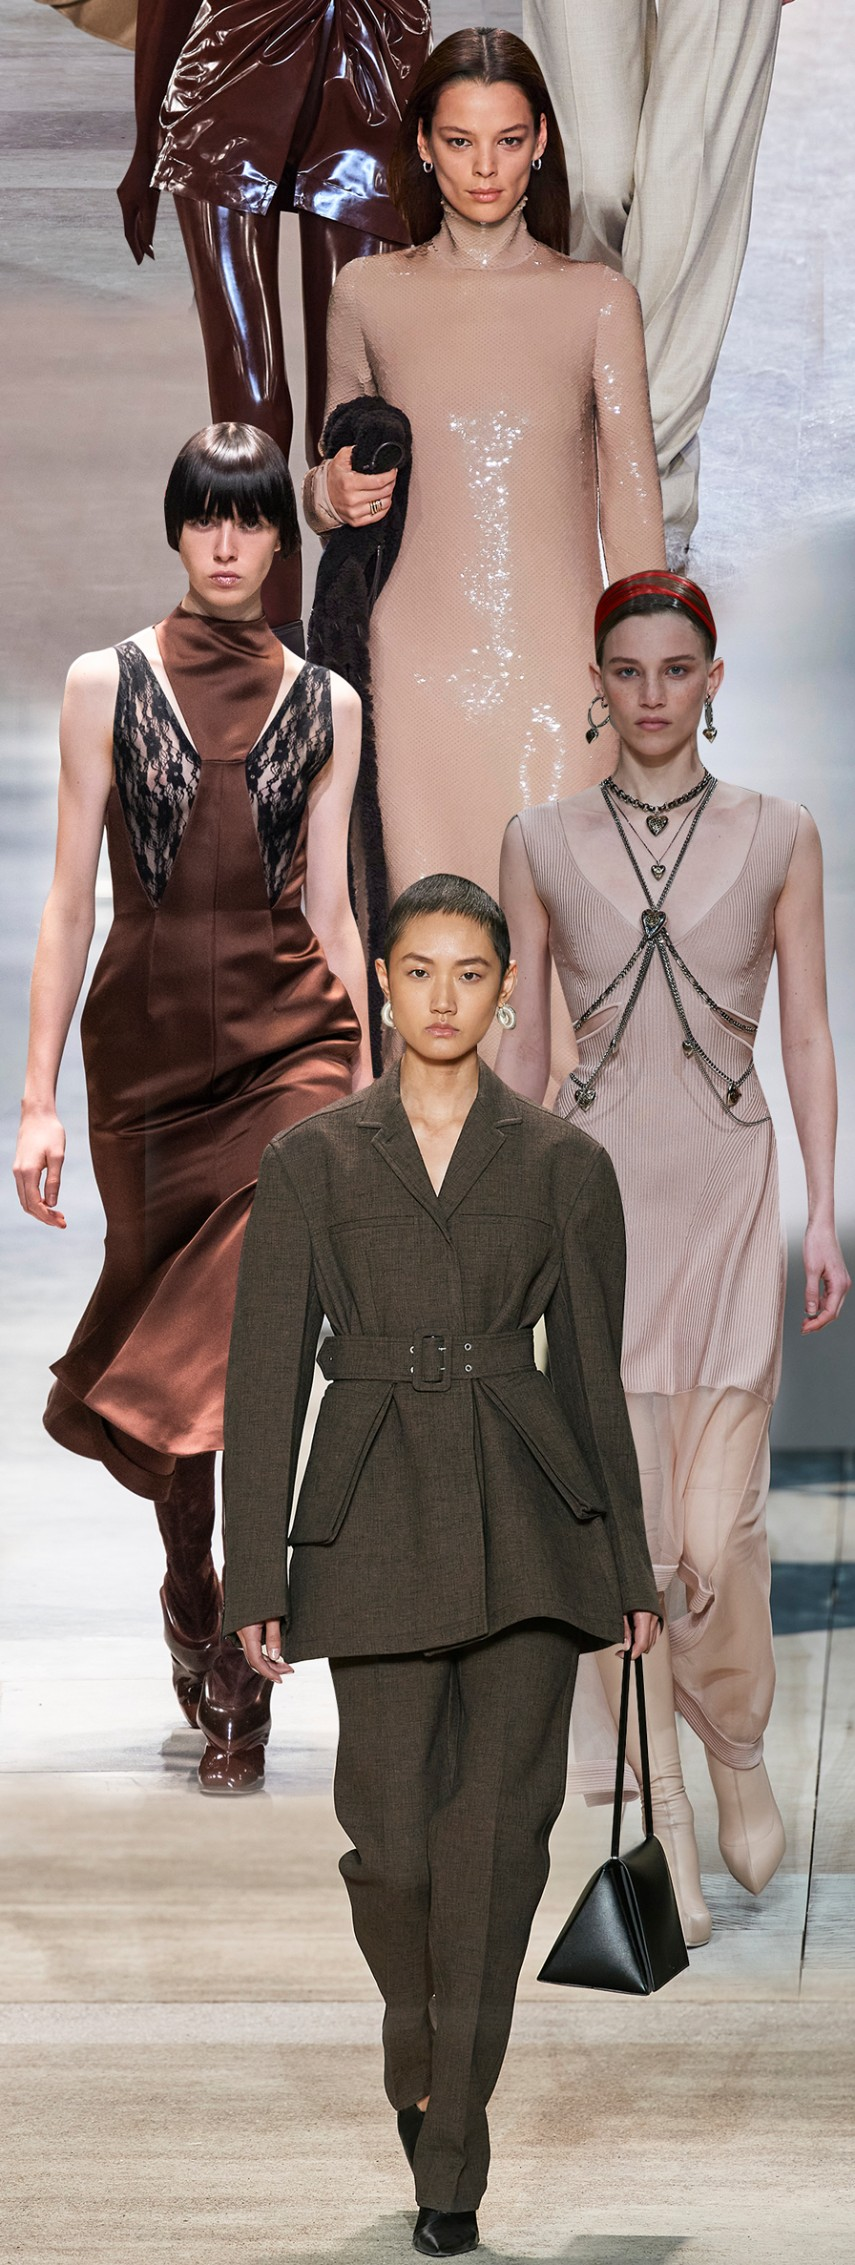 The Hottest And Most Coveted Fashion Trends From The Fall 2020 Runways (11) fashion trend The Hottest And Most Coveted Fashion Trends From The Fall 2020 Runways The Hottest And Most Coveted Fashion Trends From The Fall 2020 Runways 11